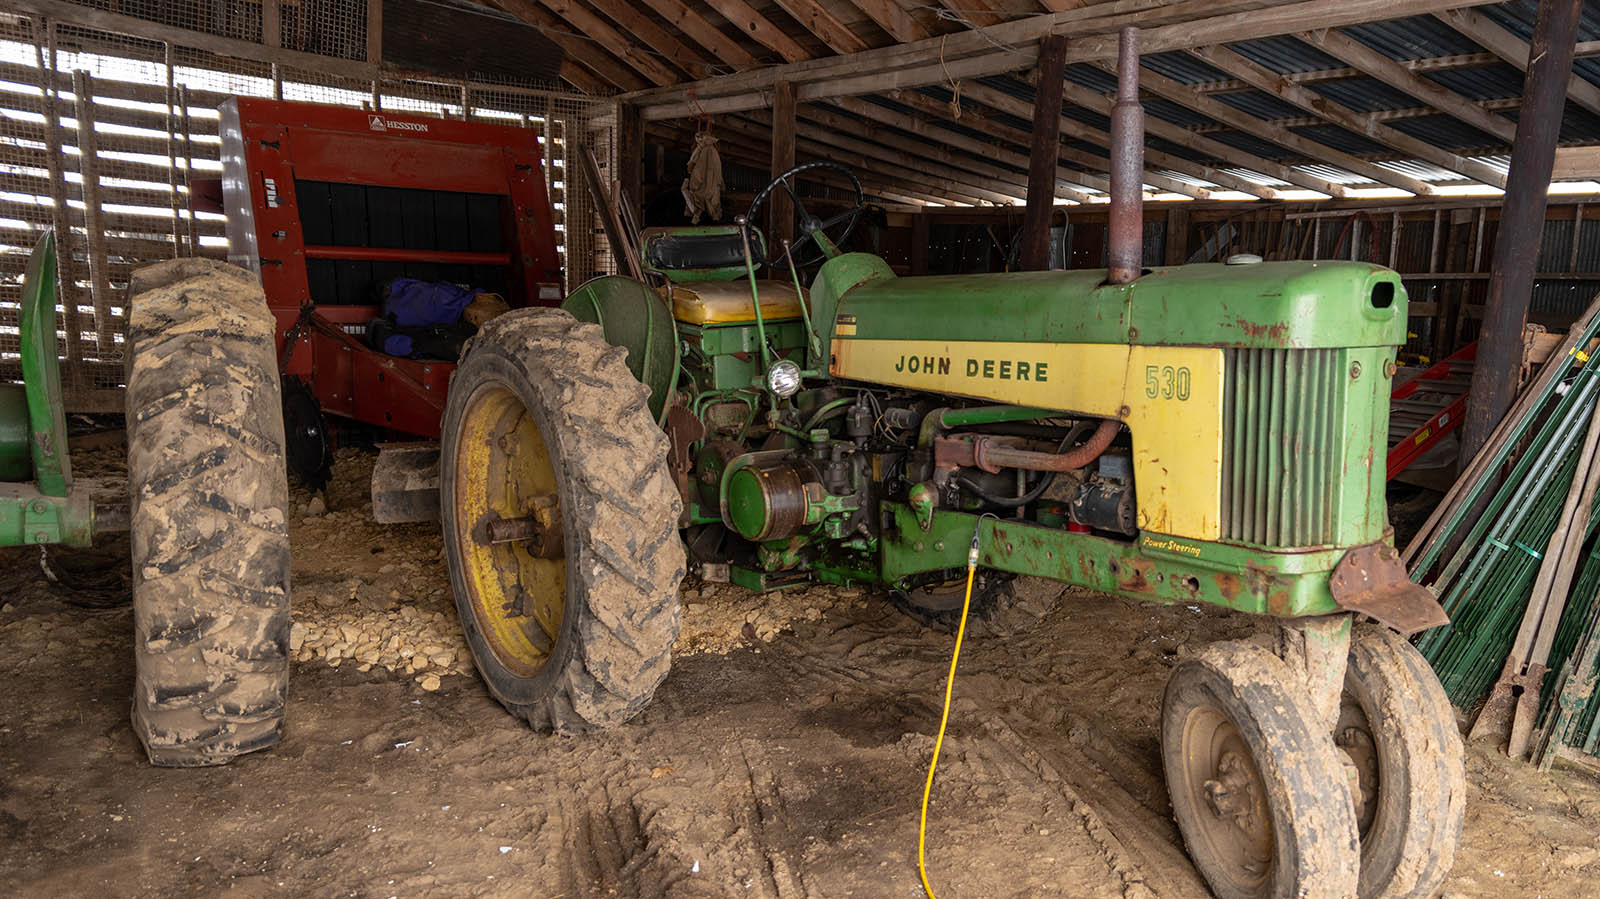 Old John Deere diesel tractor is plugged in so the engine doesn't freeze.